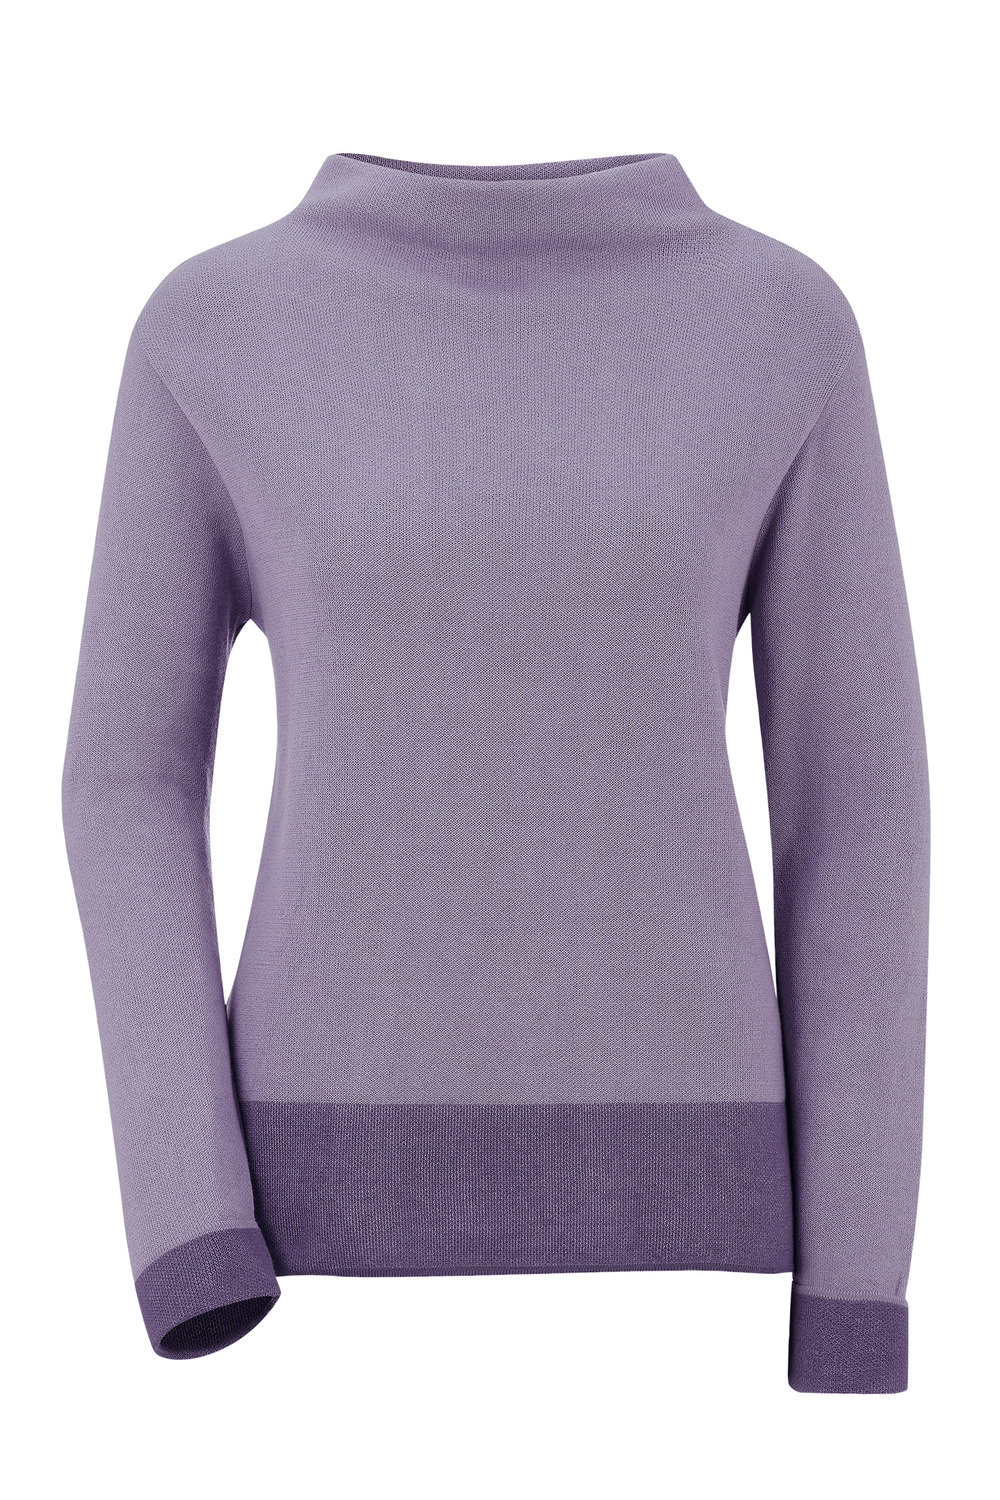 698402d3d15a98 Euro Edit Two Tone Pullover Online